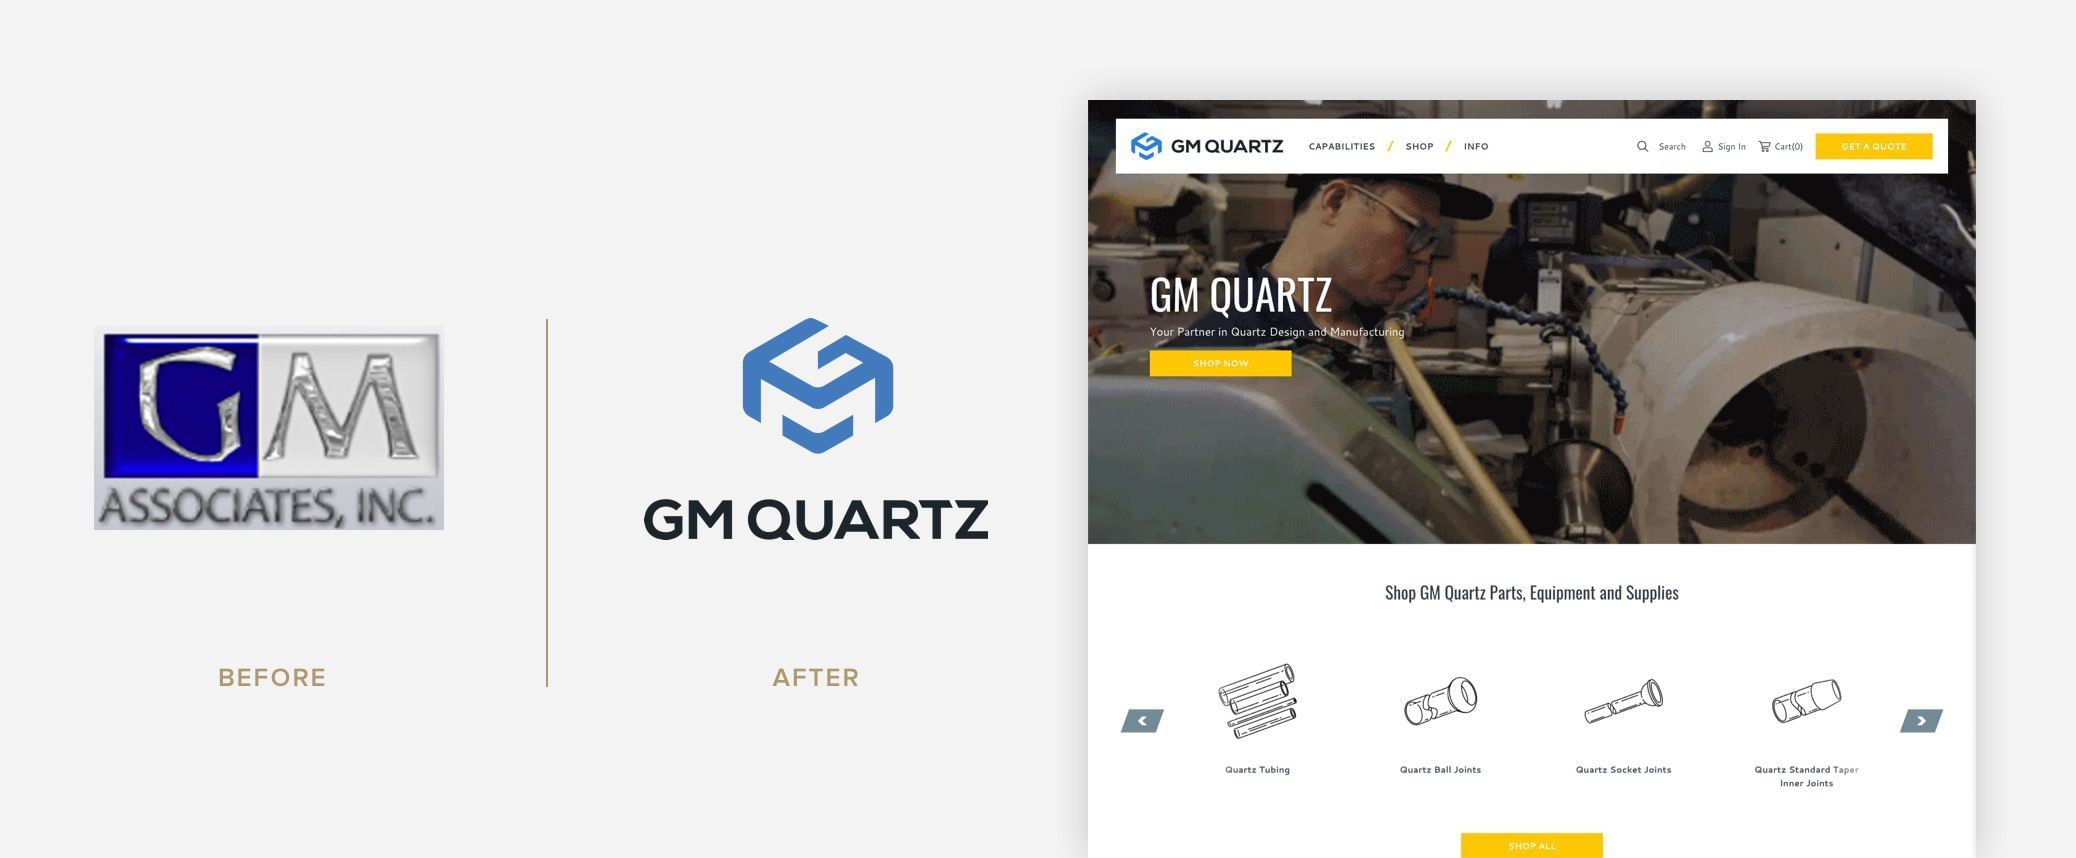 GM Quartz - Logo Before & After